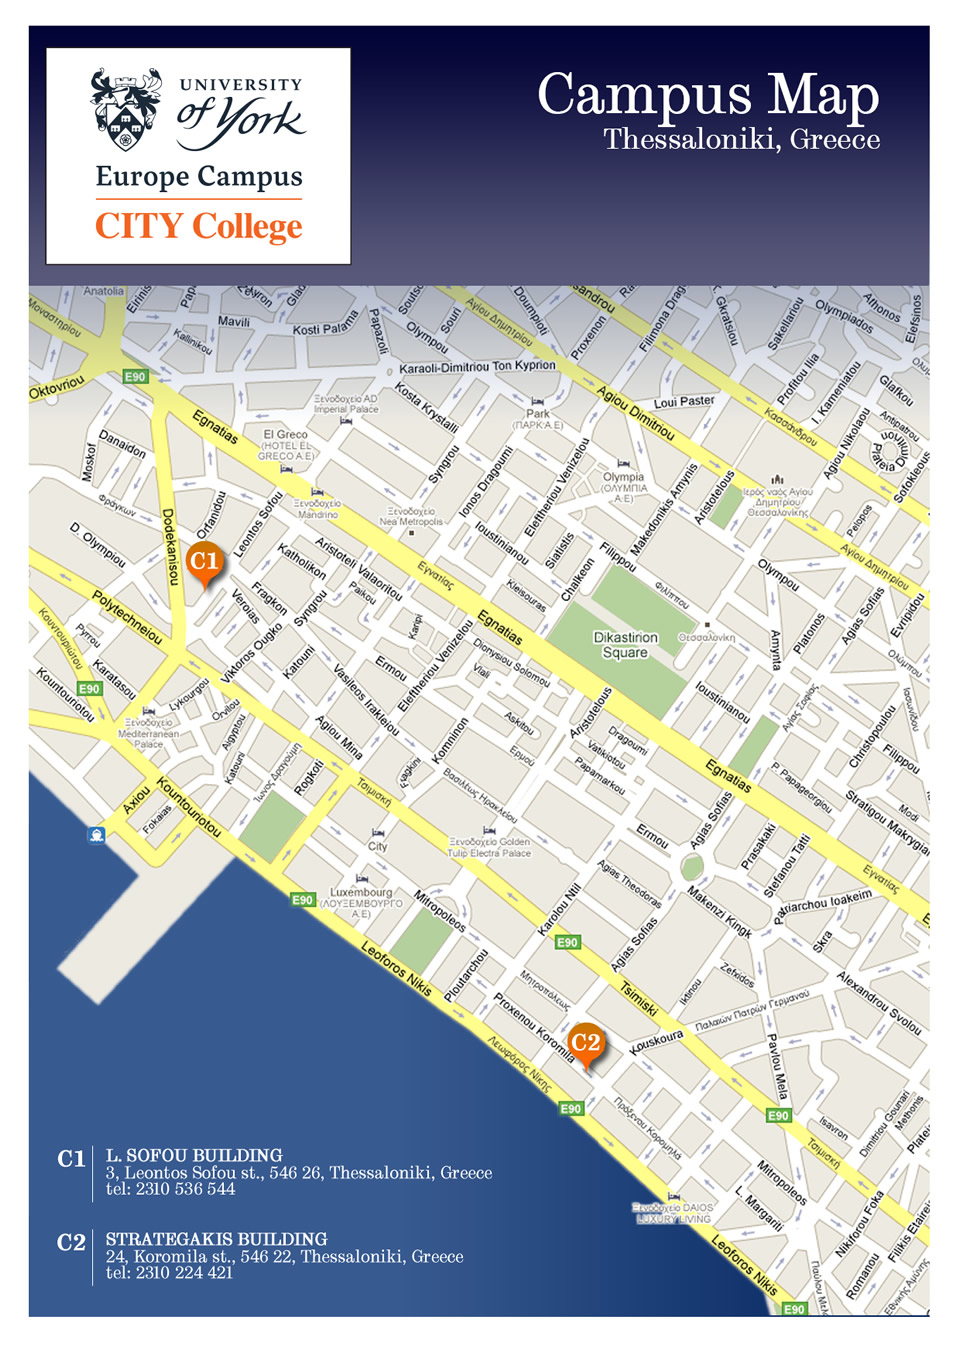 CITY College campus map